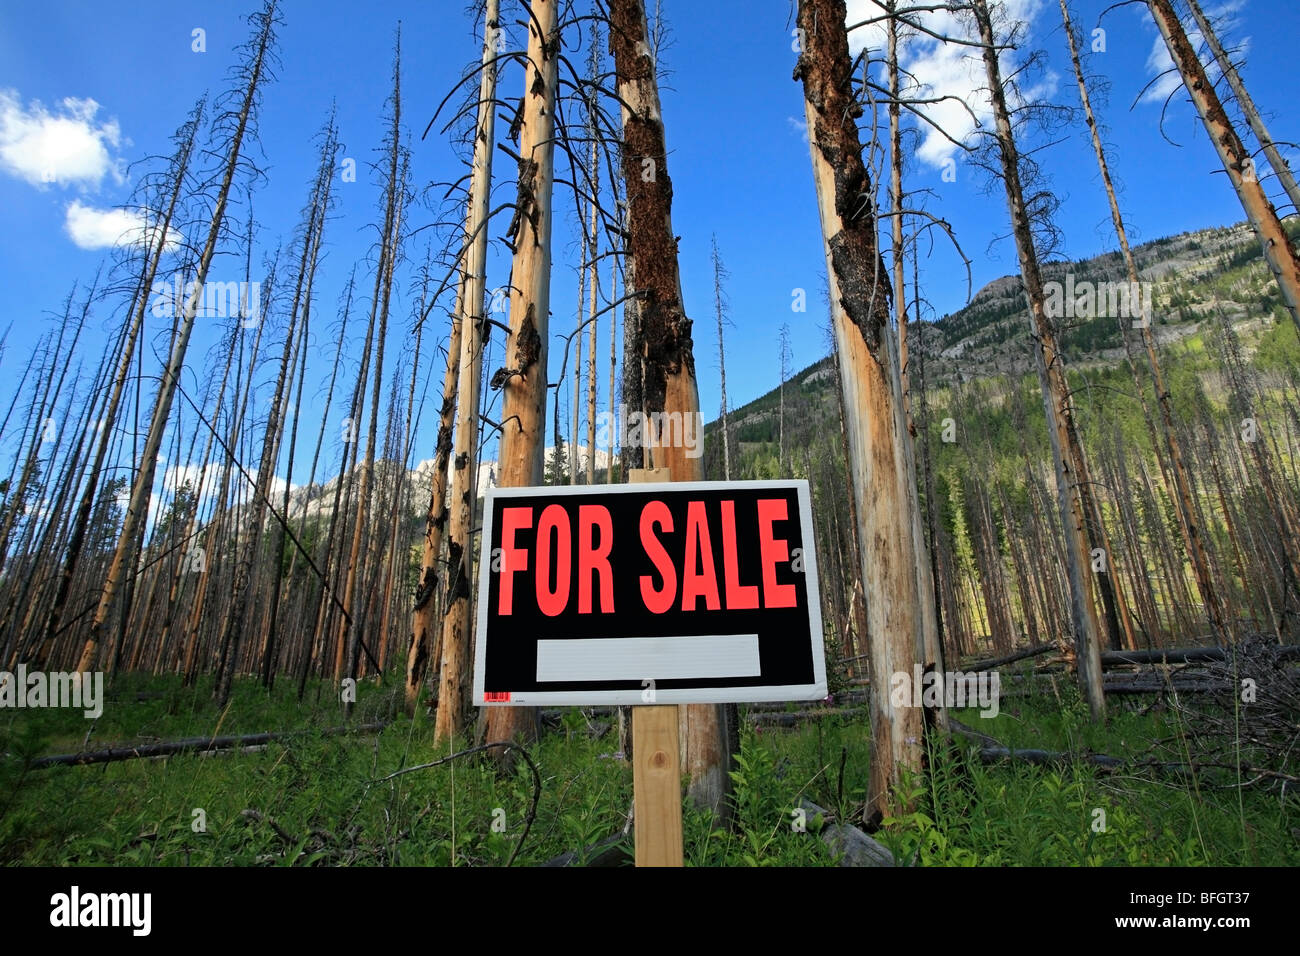 Burned trees with for sale sign. Banff National Park, Alberta, Canada - Stock Image